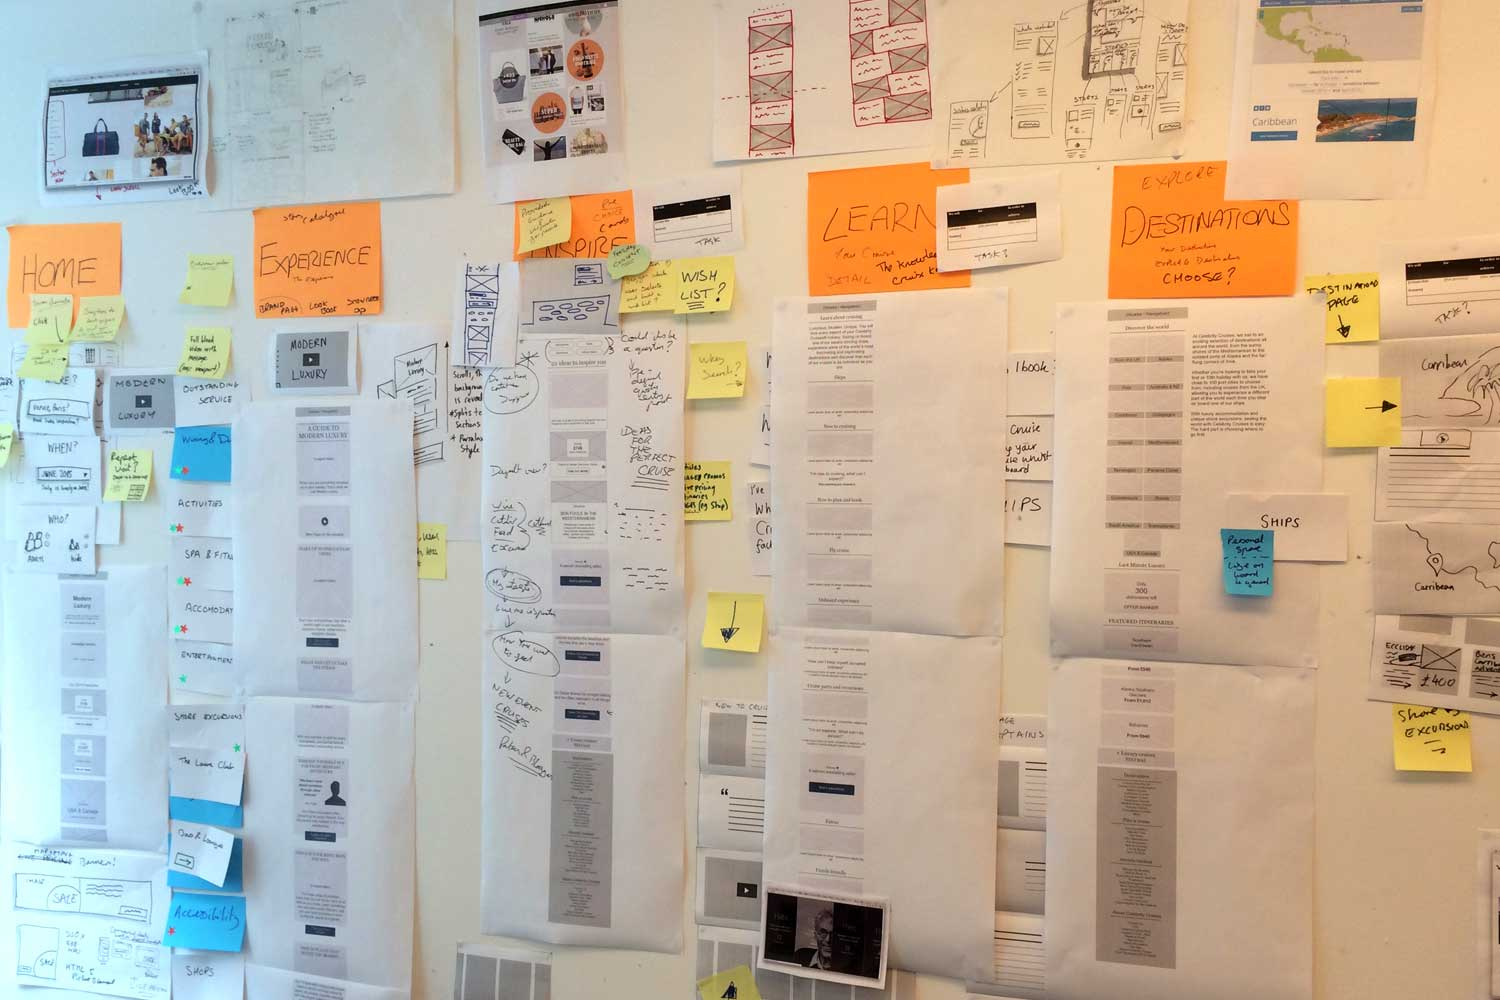 The explore output. Sketches, post it notes, wireframes, reference and vision.